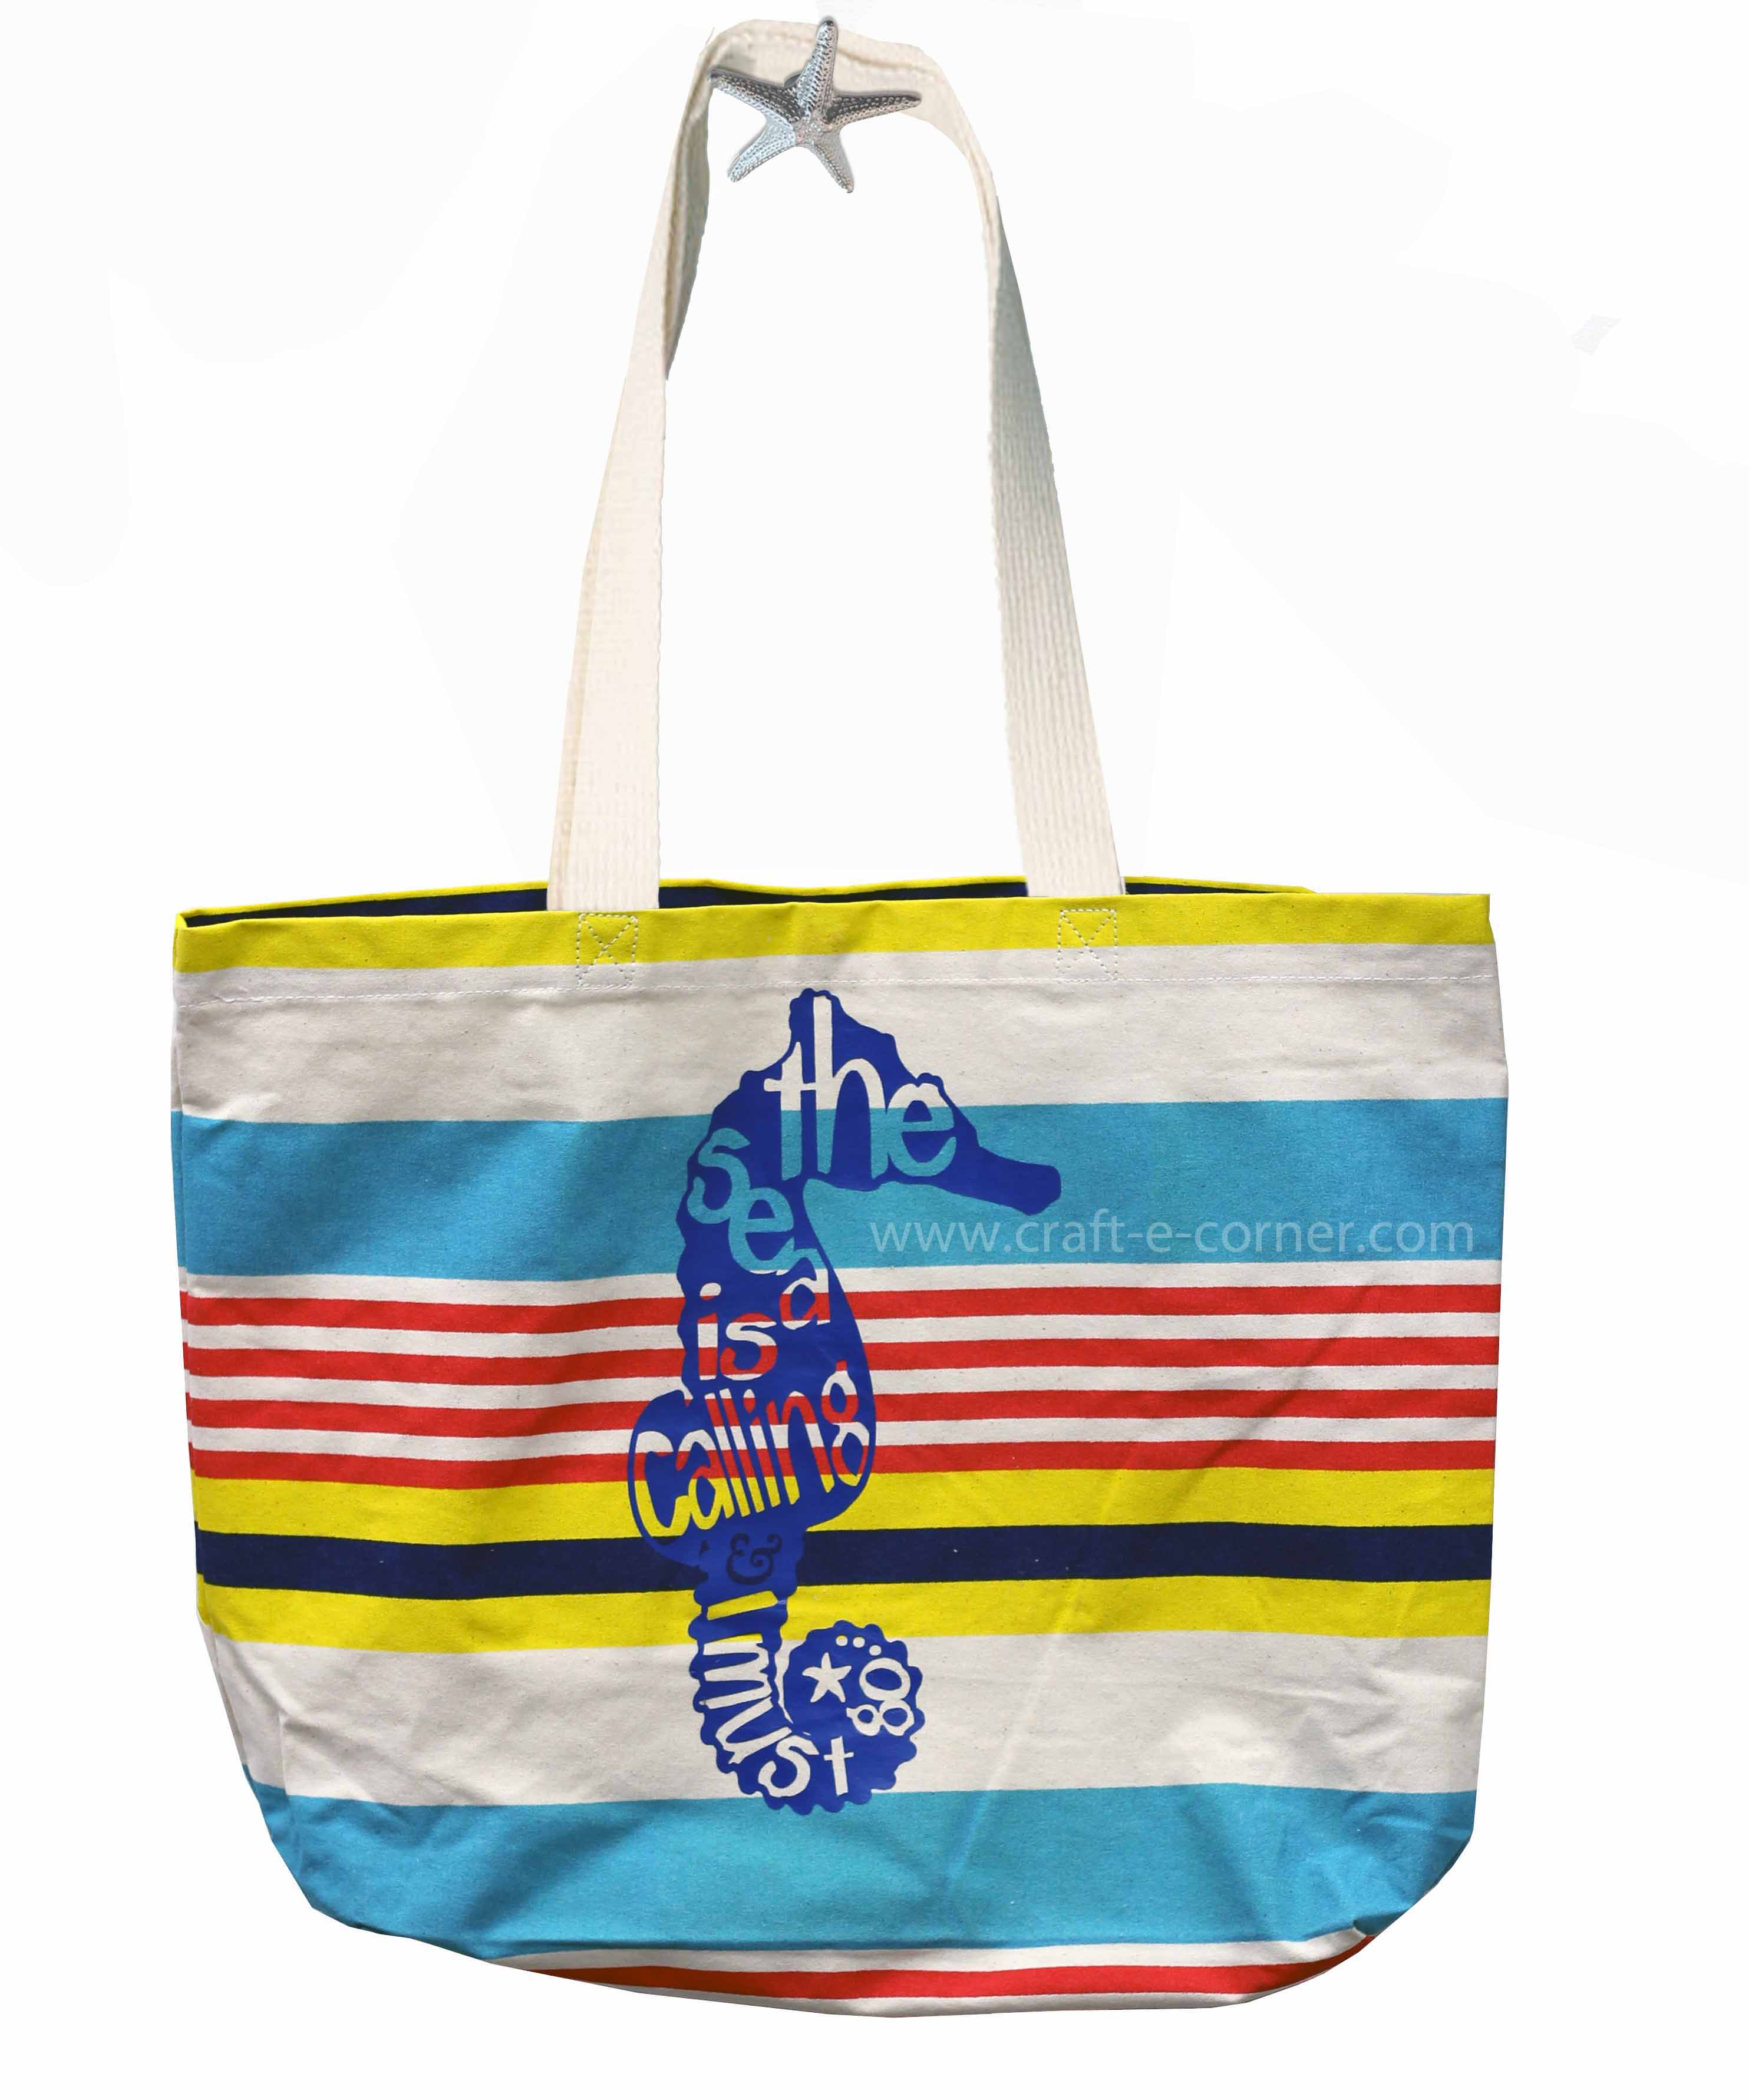 The sea is calling and I must go- adorable beach ready canvas bag! LOVE the seahorse!